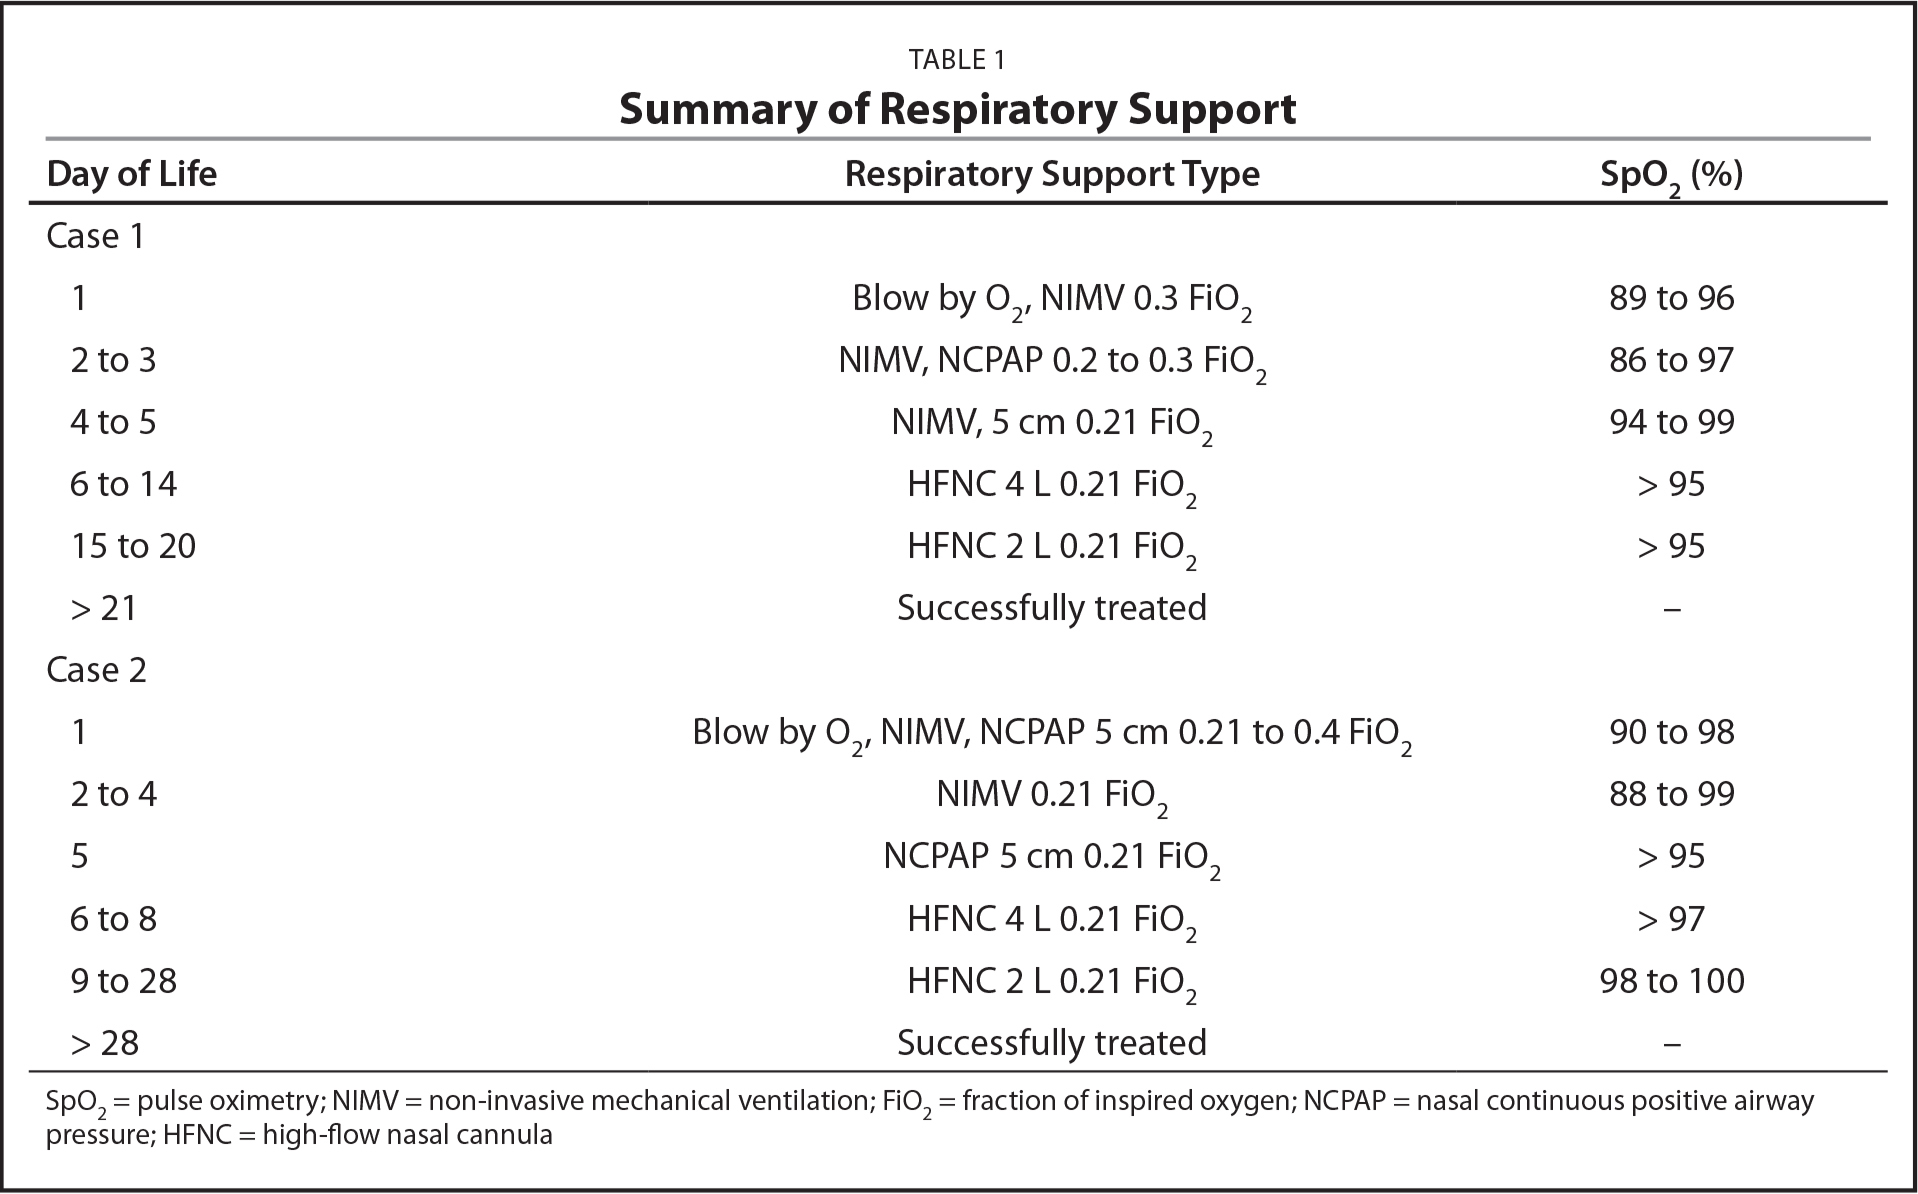 Summary of Respiratory Support